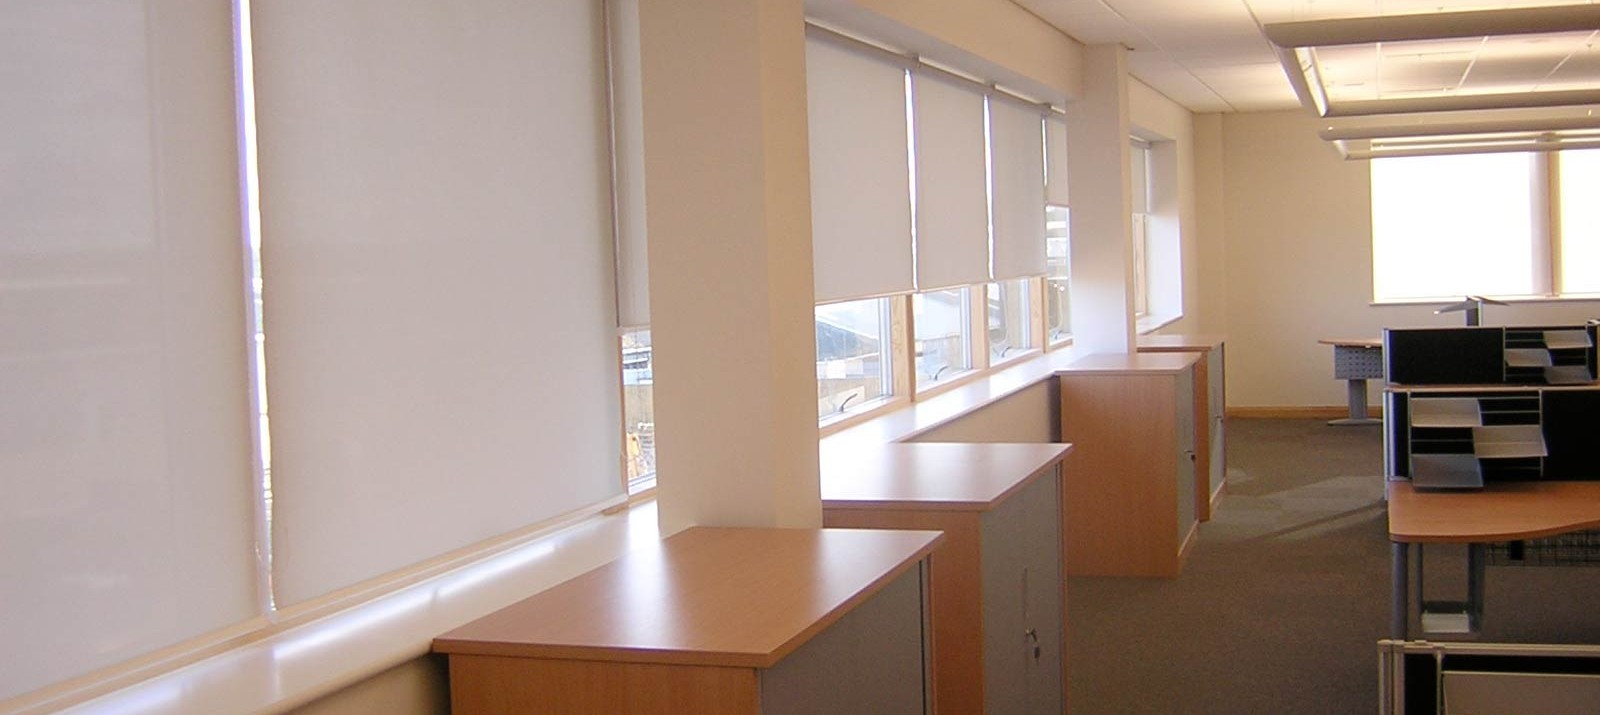 Commercial Window Blinds